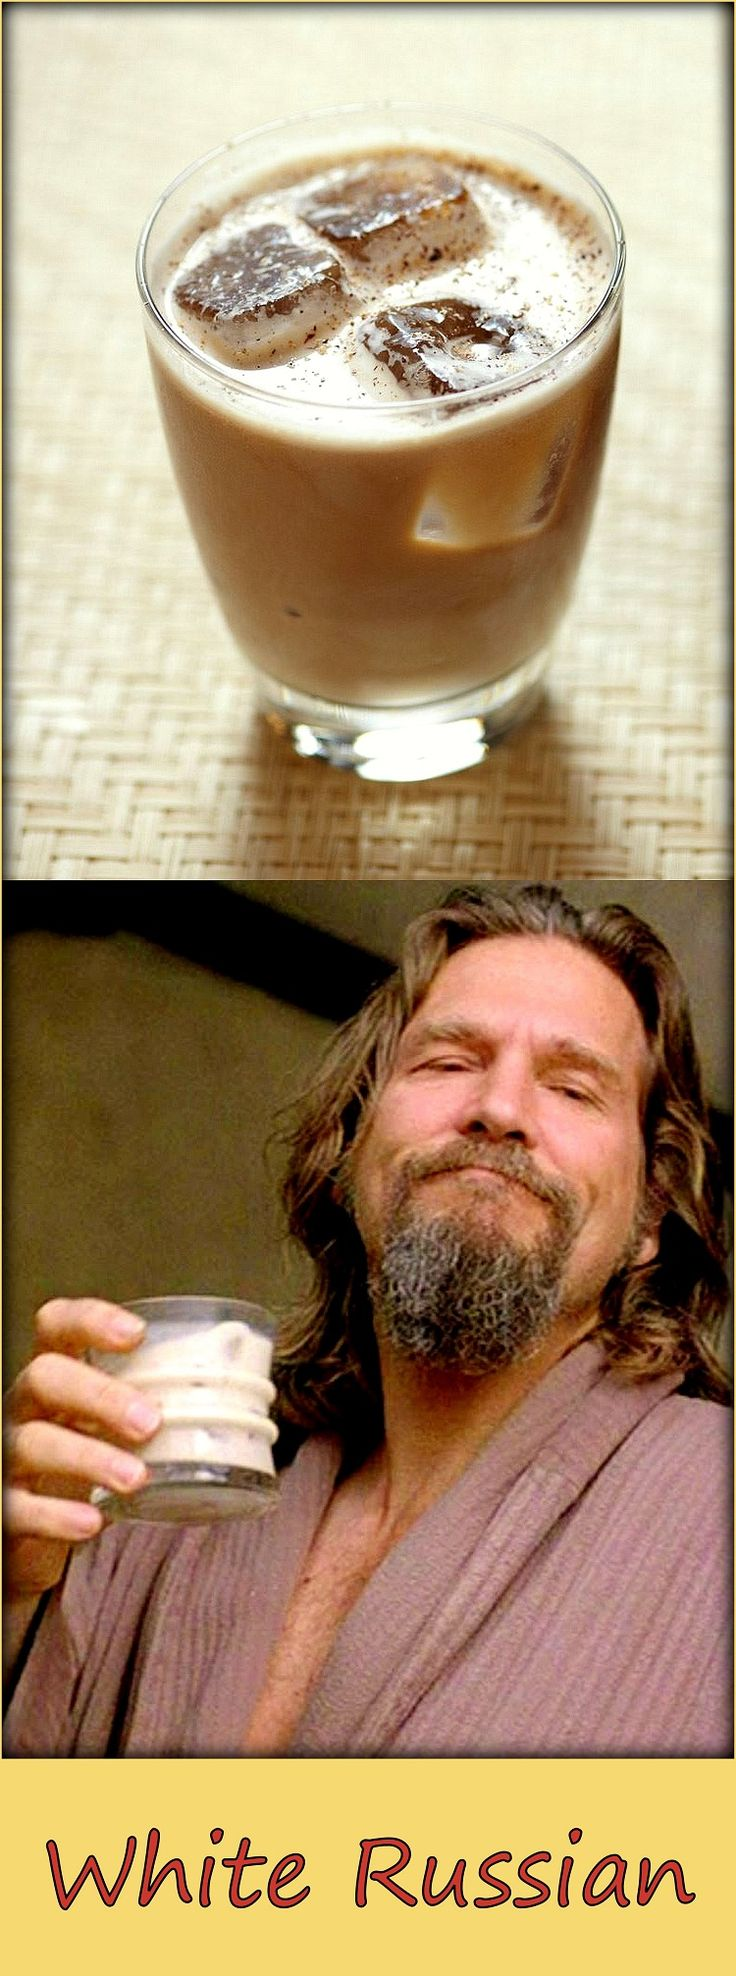 image source: http://www.kung-food.it/ricette-dei-film/white-russian-de-il-grande-lebowski/709/ The Big… White Russian Ingredients 2 parts Vodka 1 part Kahlua coffee liqueur 1 part cream ice cubes . Preparation Add the ingredients in an old fashioned glass, garnish and serve Related posts: B-52 White Lady Irish Coffee Brandy Alexander Old Fashioned